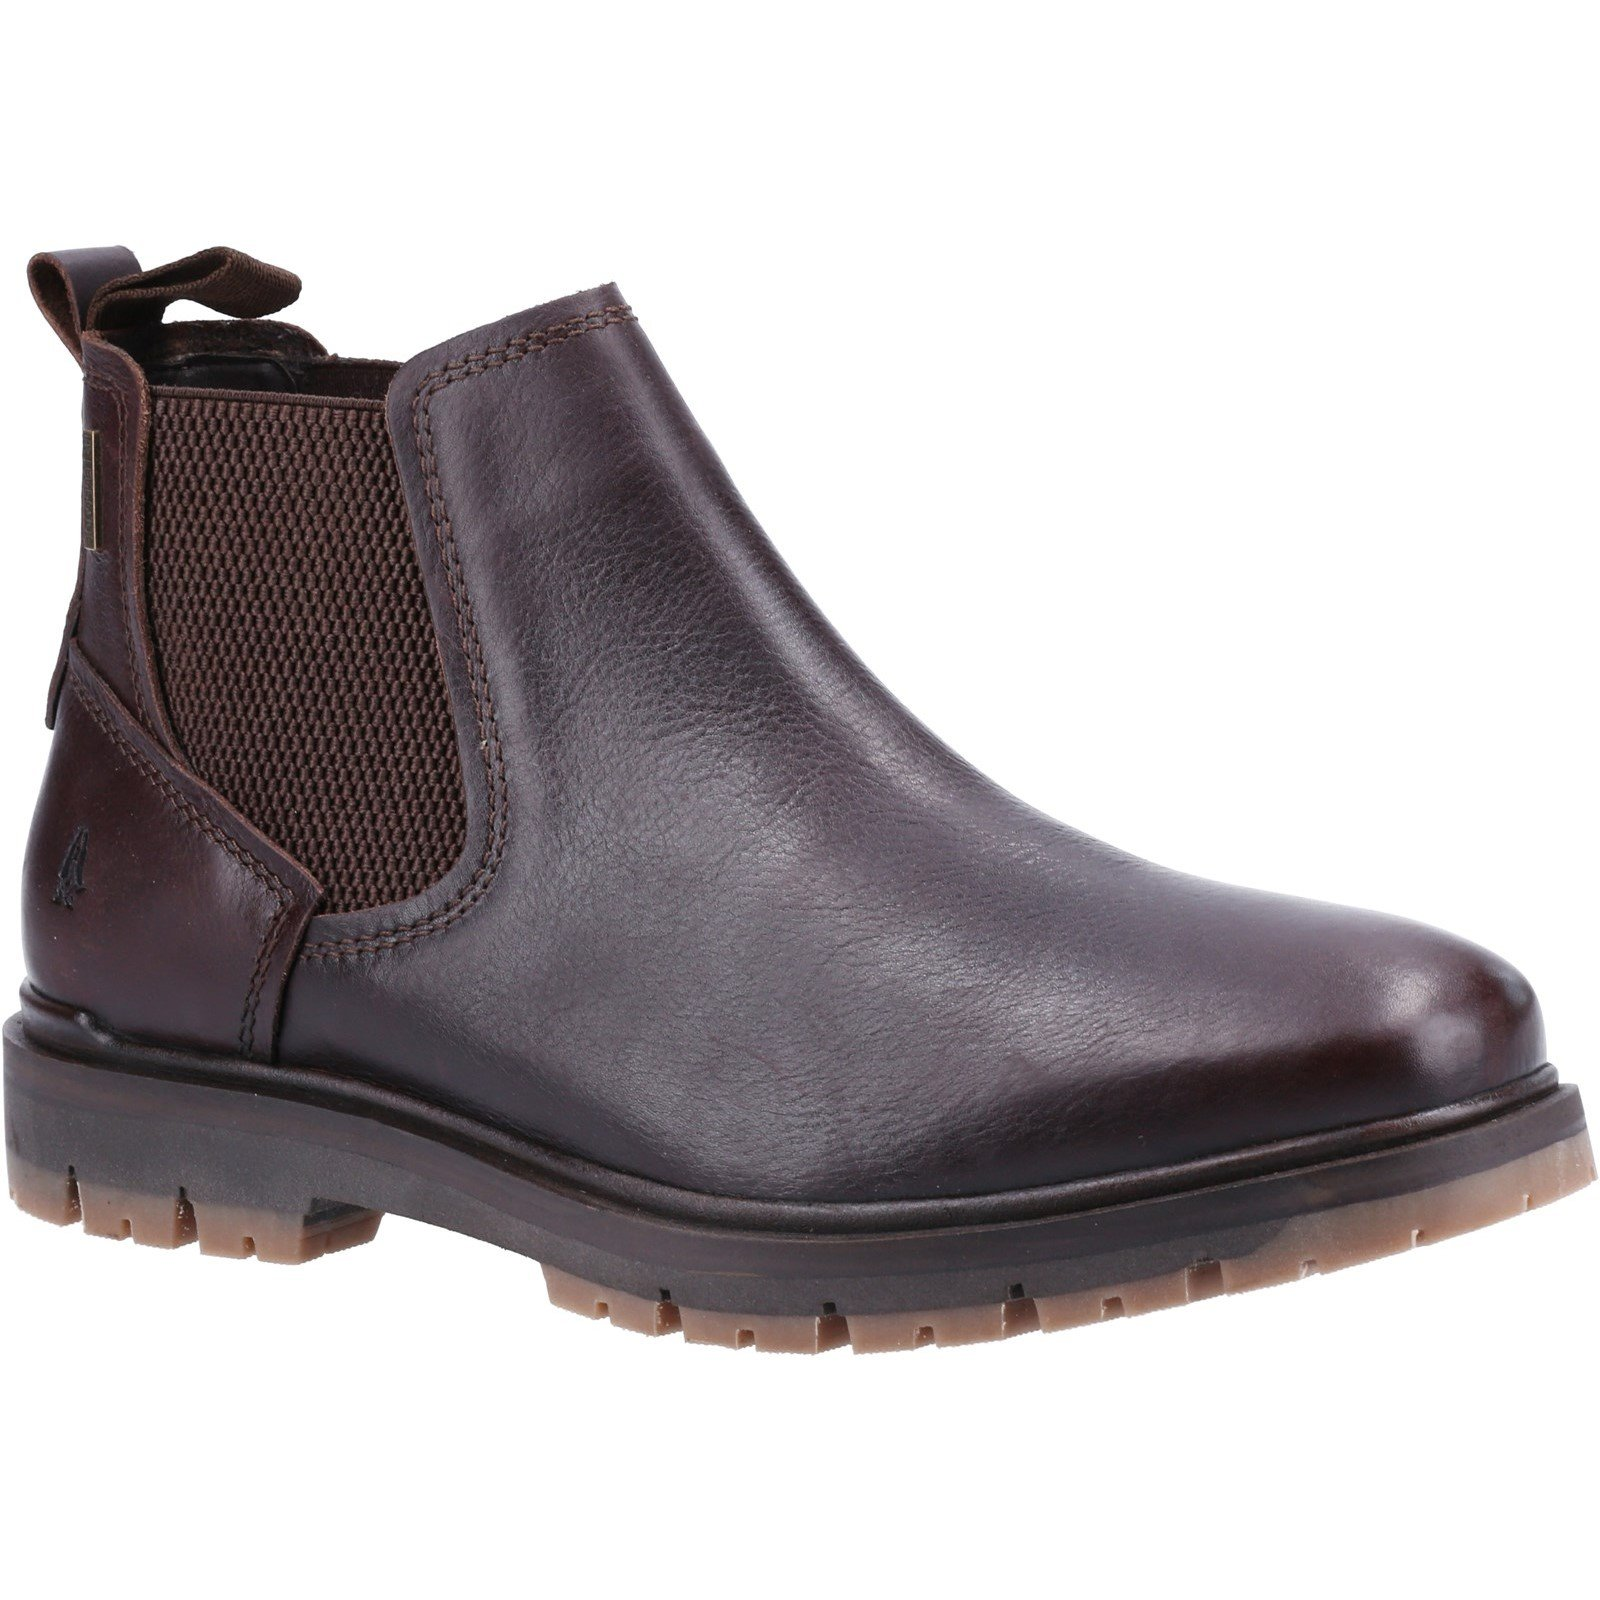 Hush Puppies Men's Paxton Chelsea Boot Various Colours 32882 - Brown 11